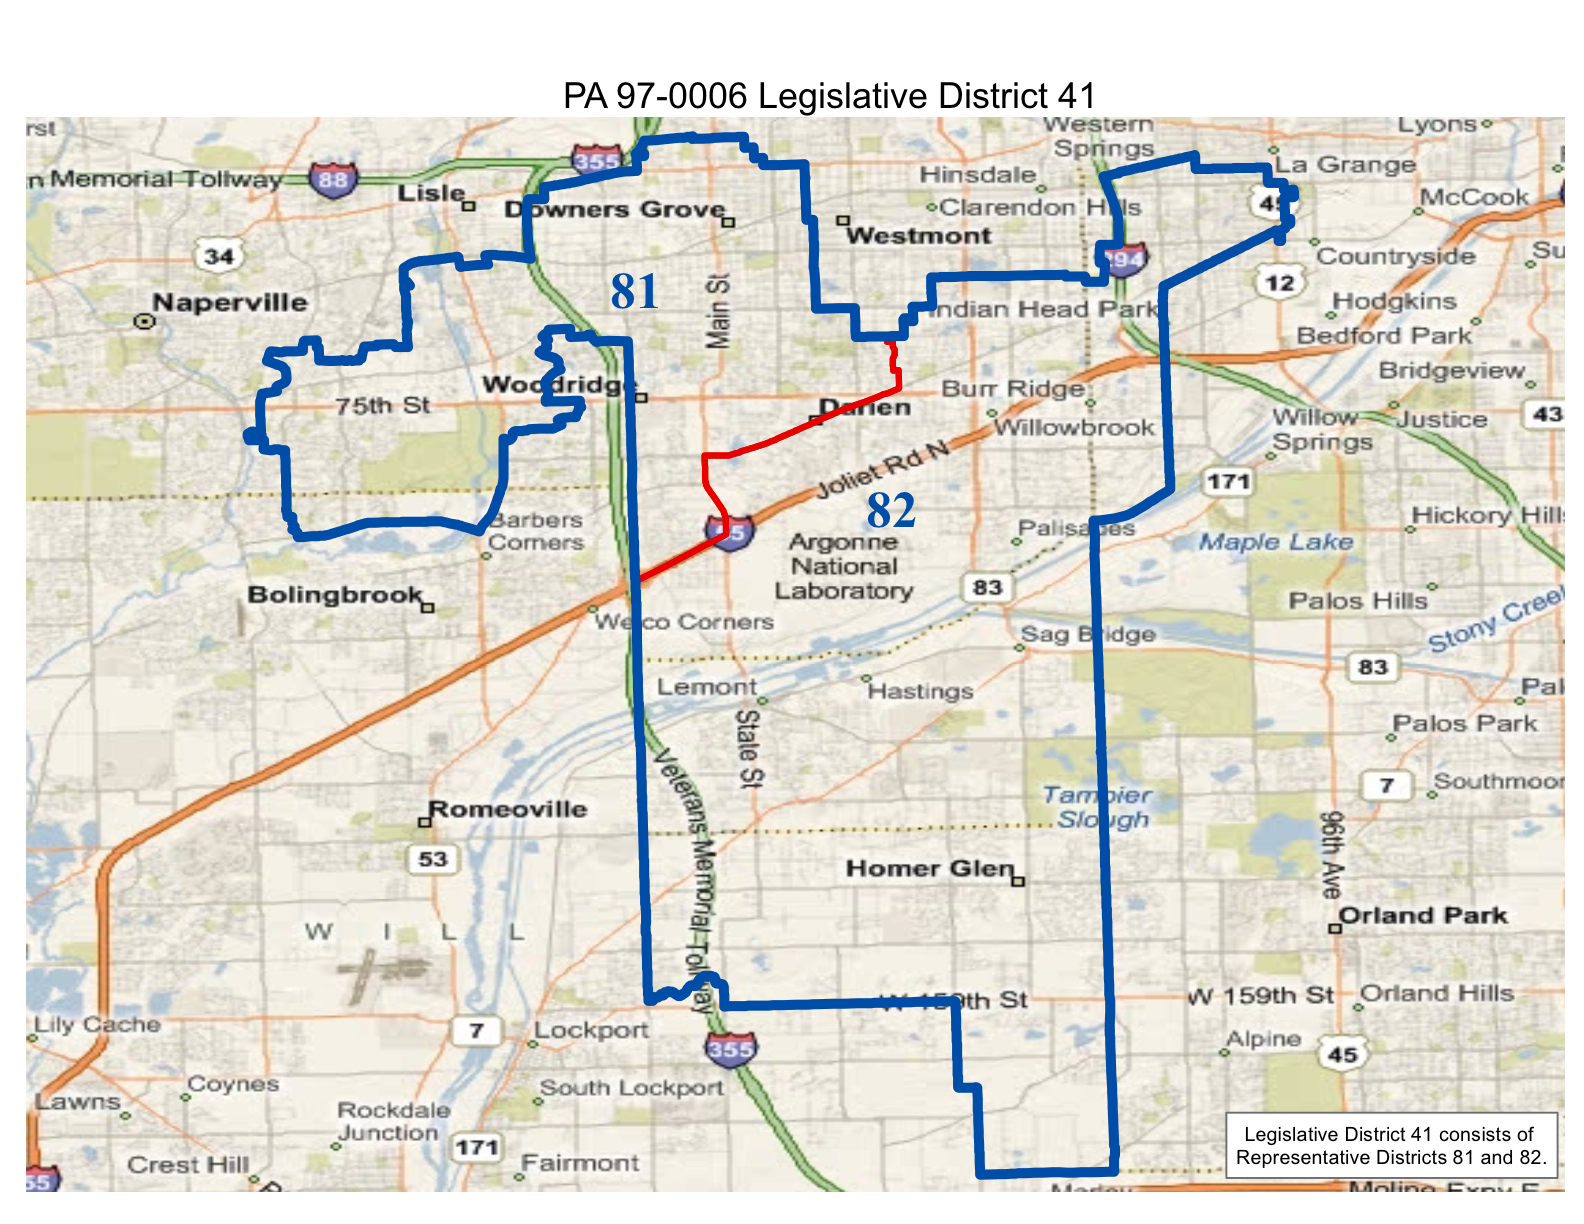 realigned illinois state senate district 41 and state representative districts 81 and 82